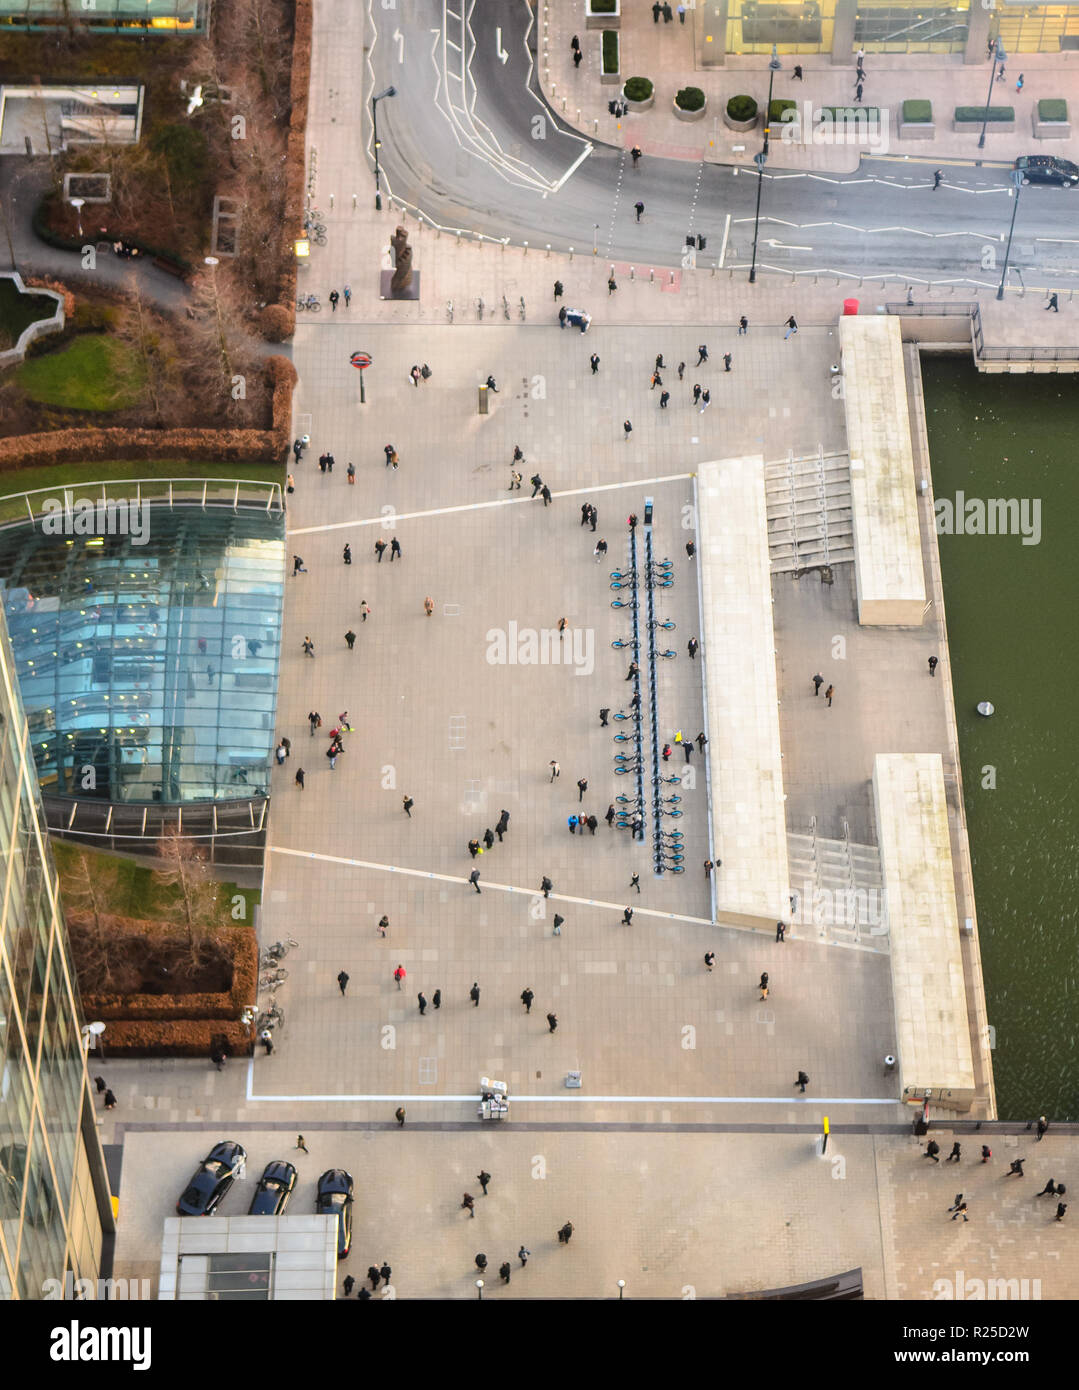 London, England - February 27, 2015: Commuters and pedestrians in Reuters Plaza outside Canary Wharf Jubilee Line tube station in the Docklands busine Stock Photo